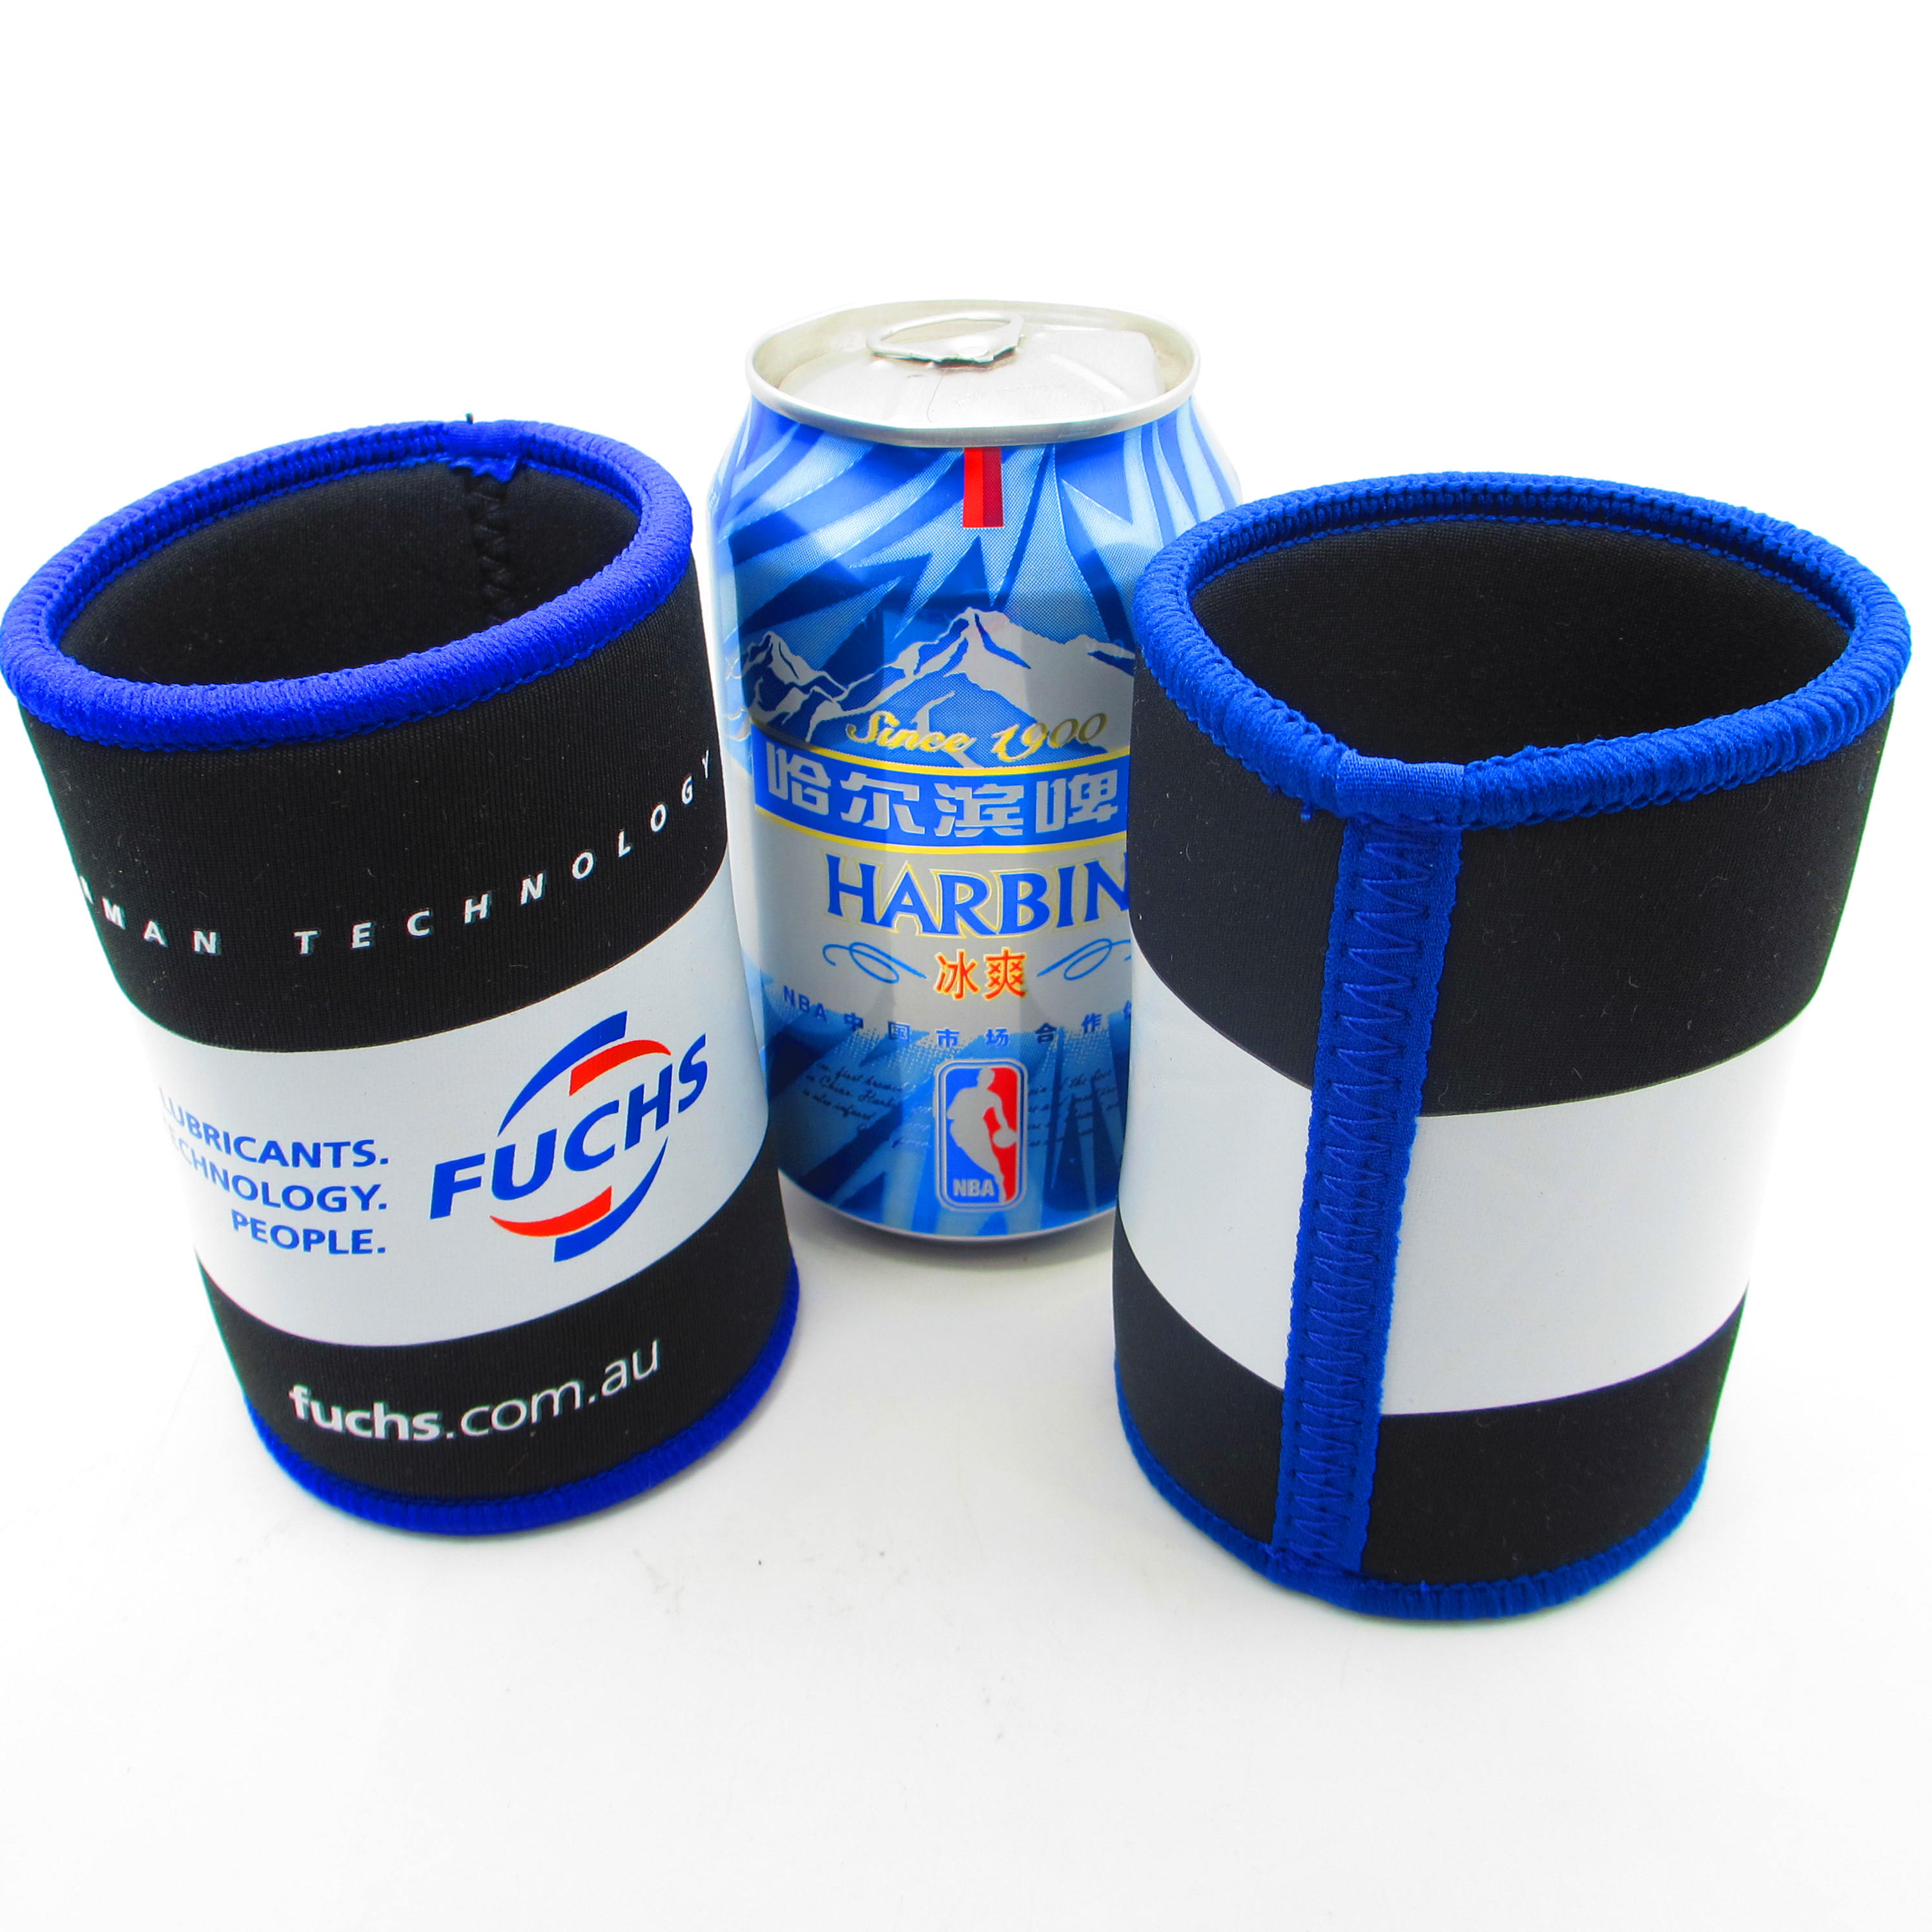 blank can wraps slap cooler/ white slap stubby holder/wrap can holder for sublimation